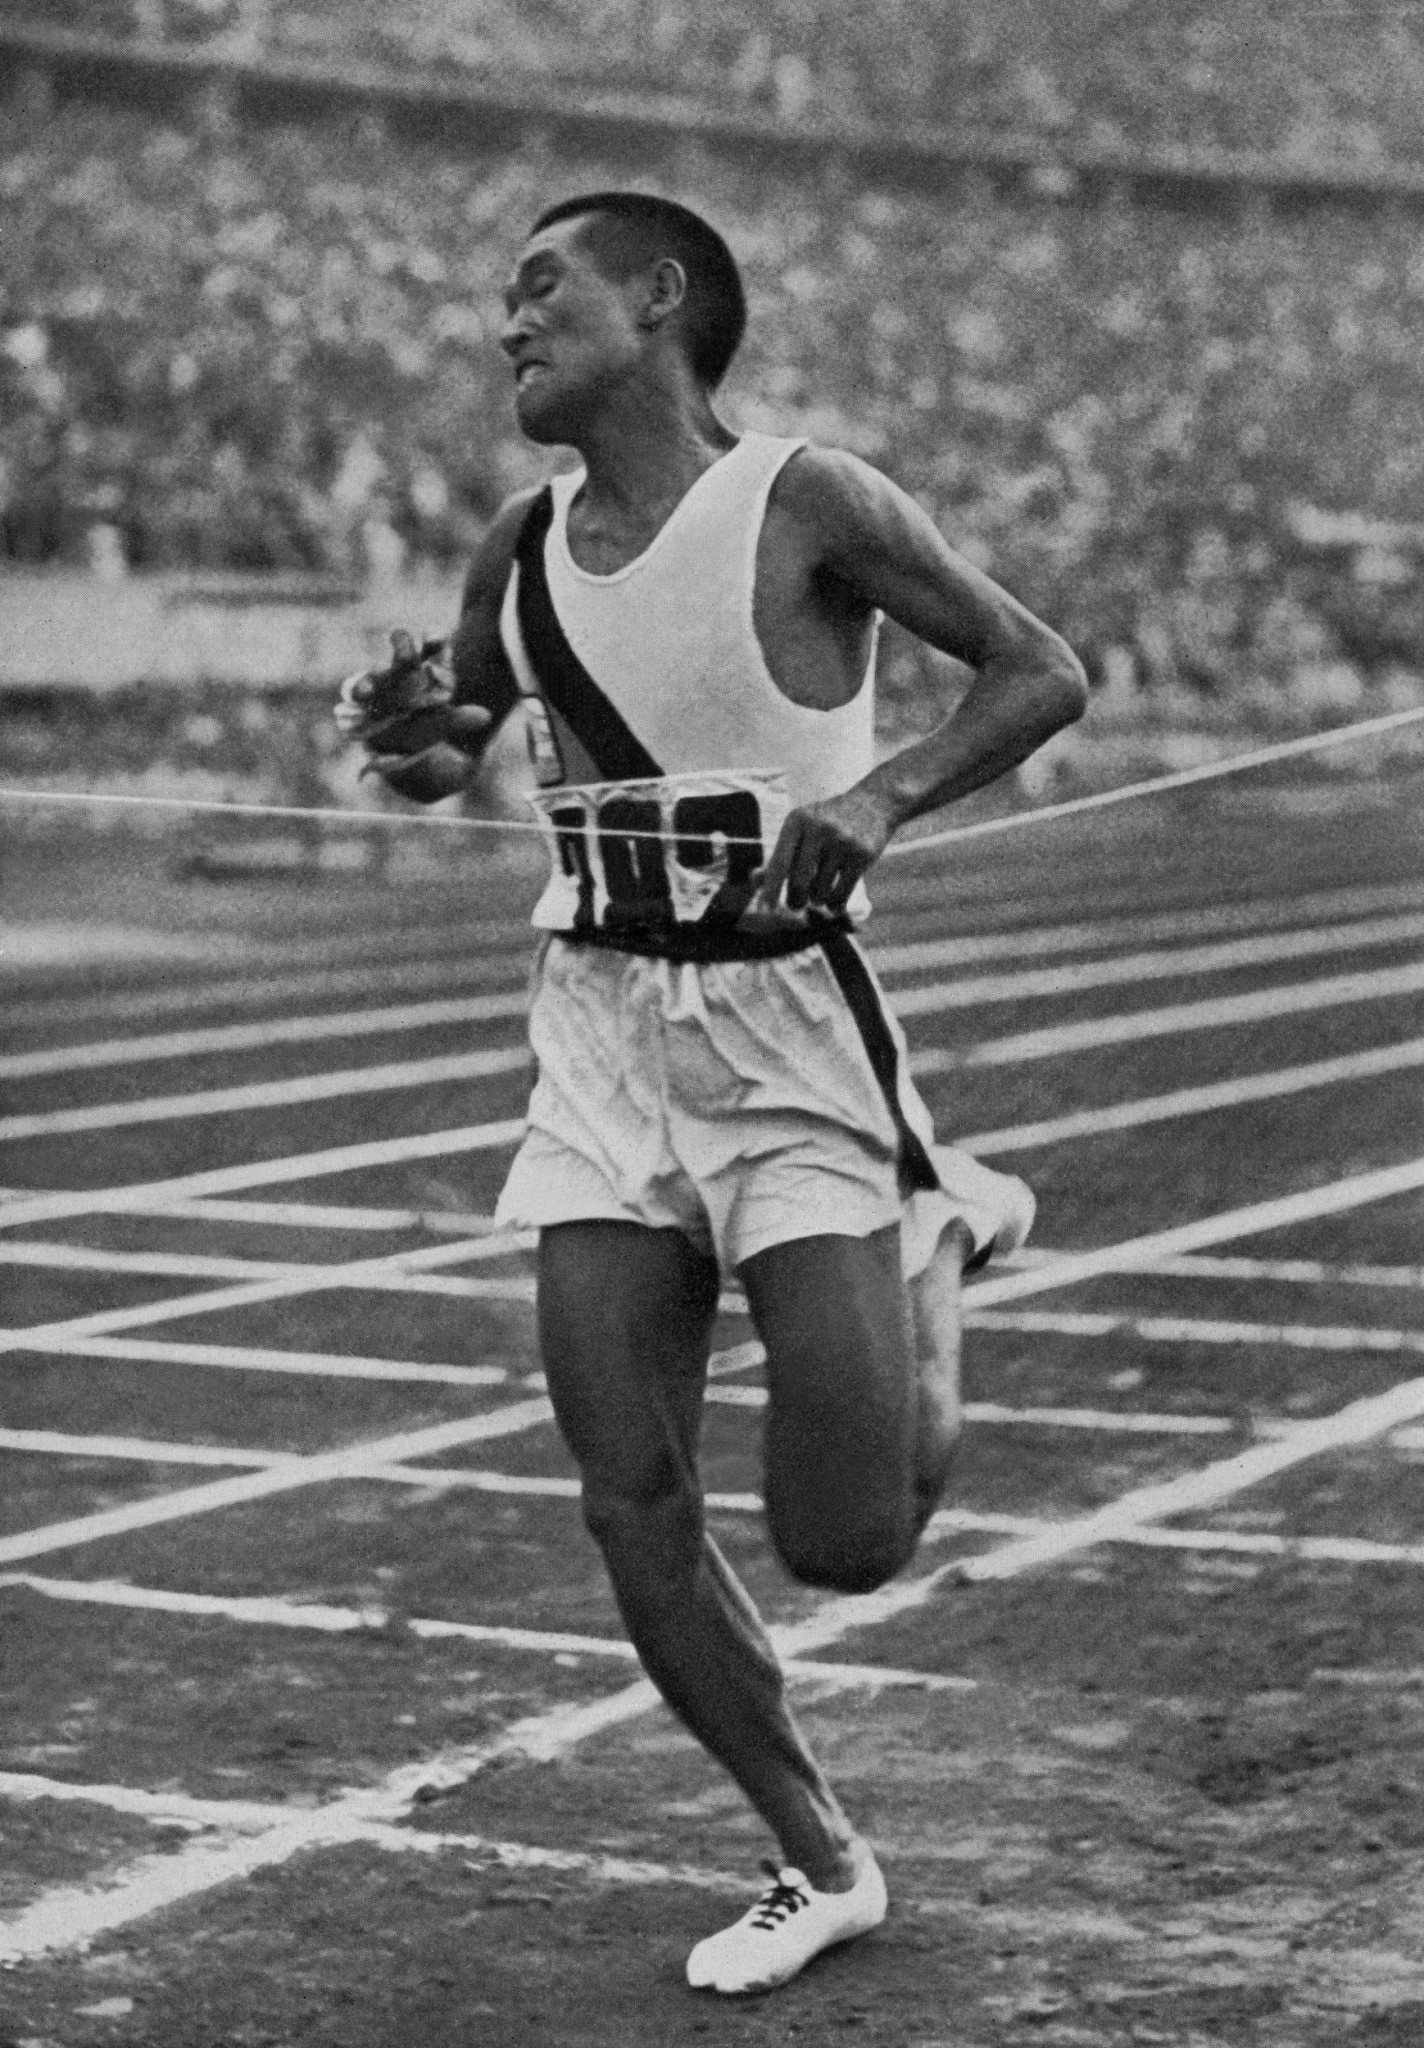 Oda formed a friendship with marathon champion Sohn Kee Chung, a Korean who competed for Japan at the 1936 Olympics ©Getty Images